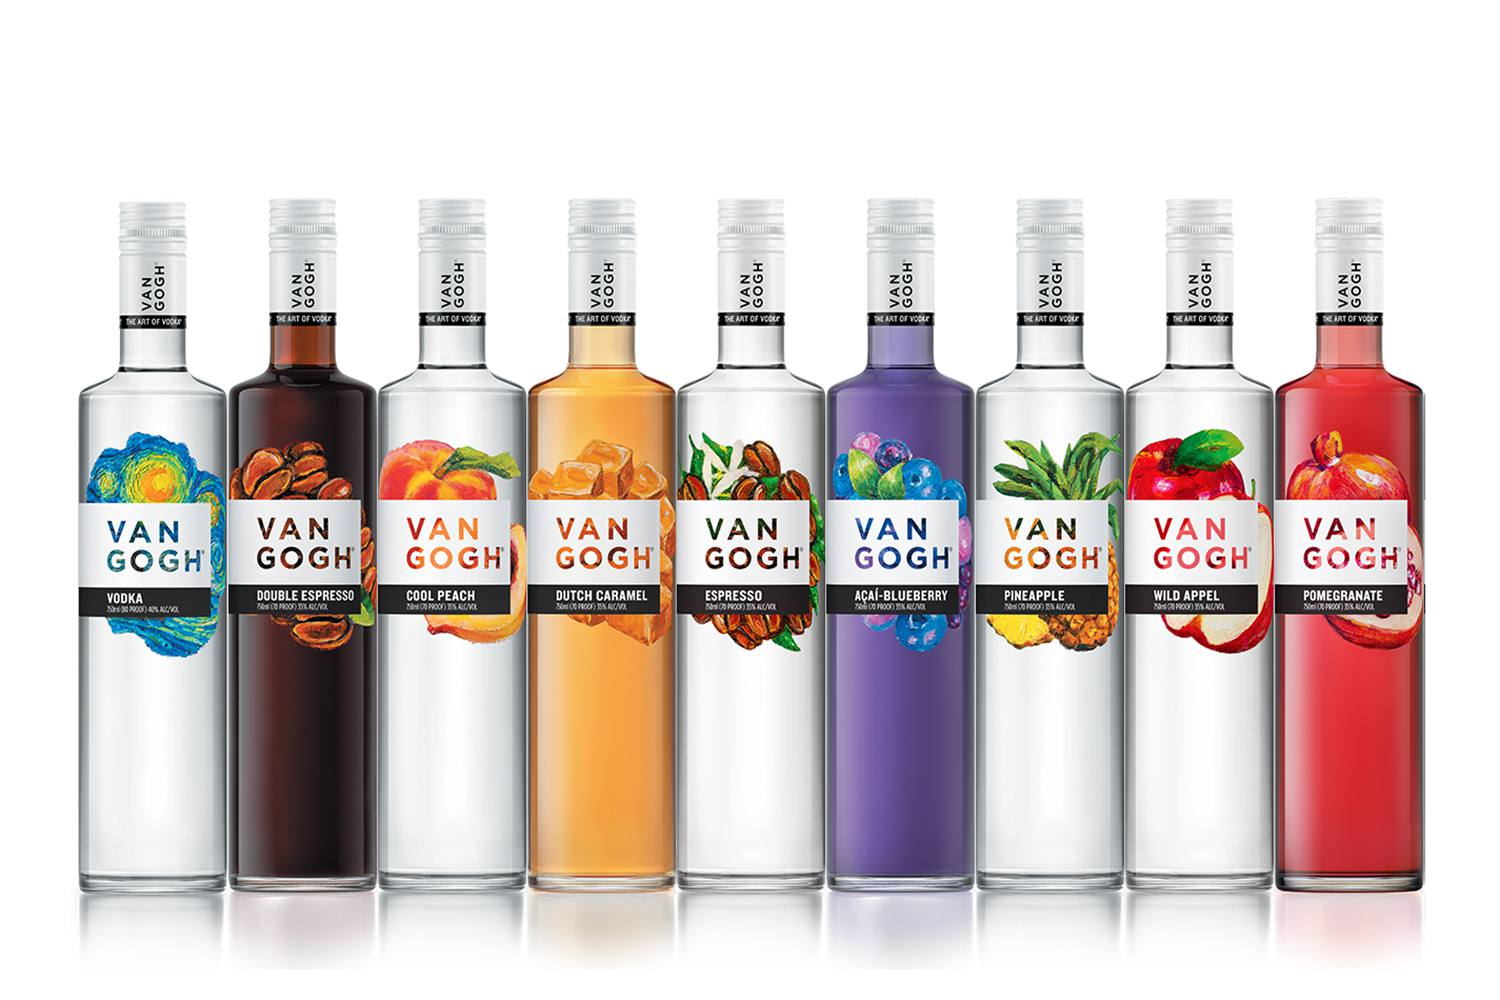 A Portion of Van Gogh Vodka's Portfolio